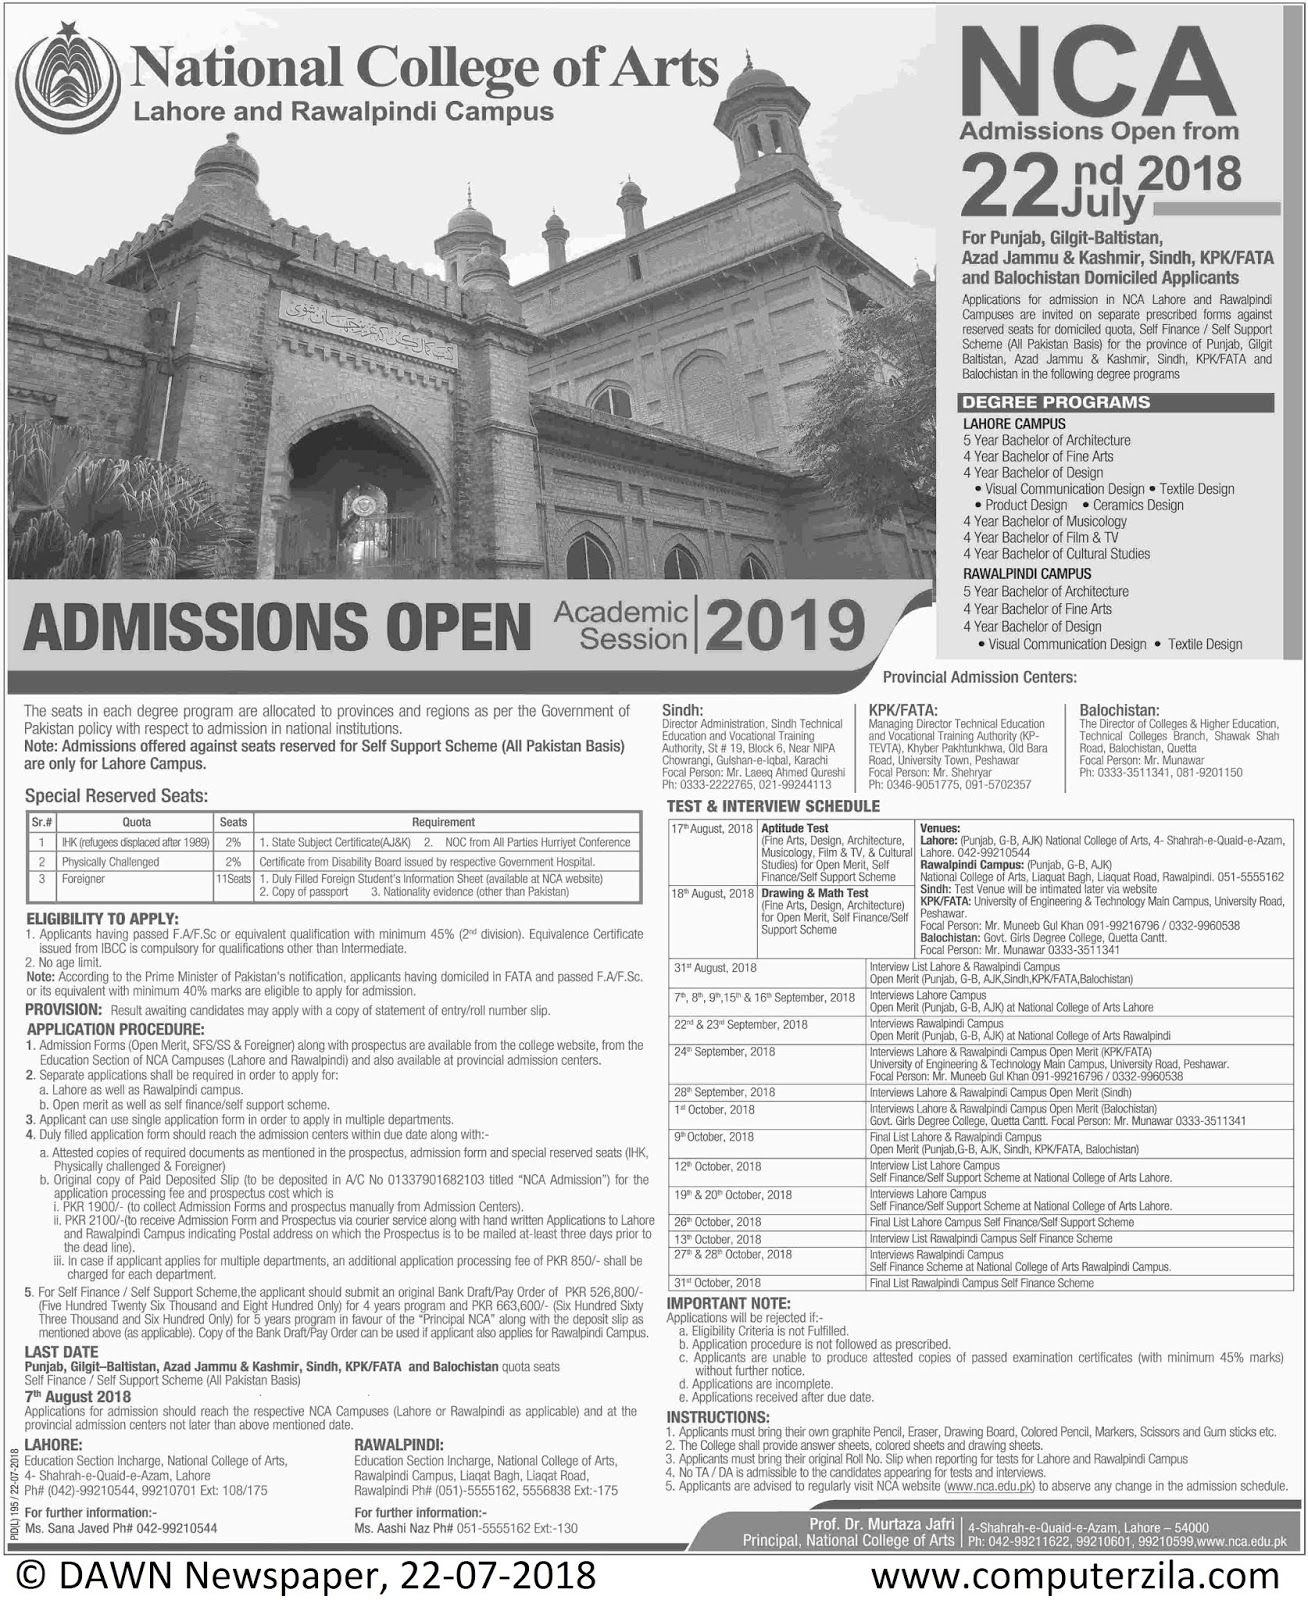 Admissions Open For Spring 2019 At NCA Lahore and Rawalpindi Campus